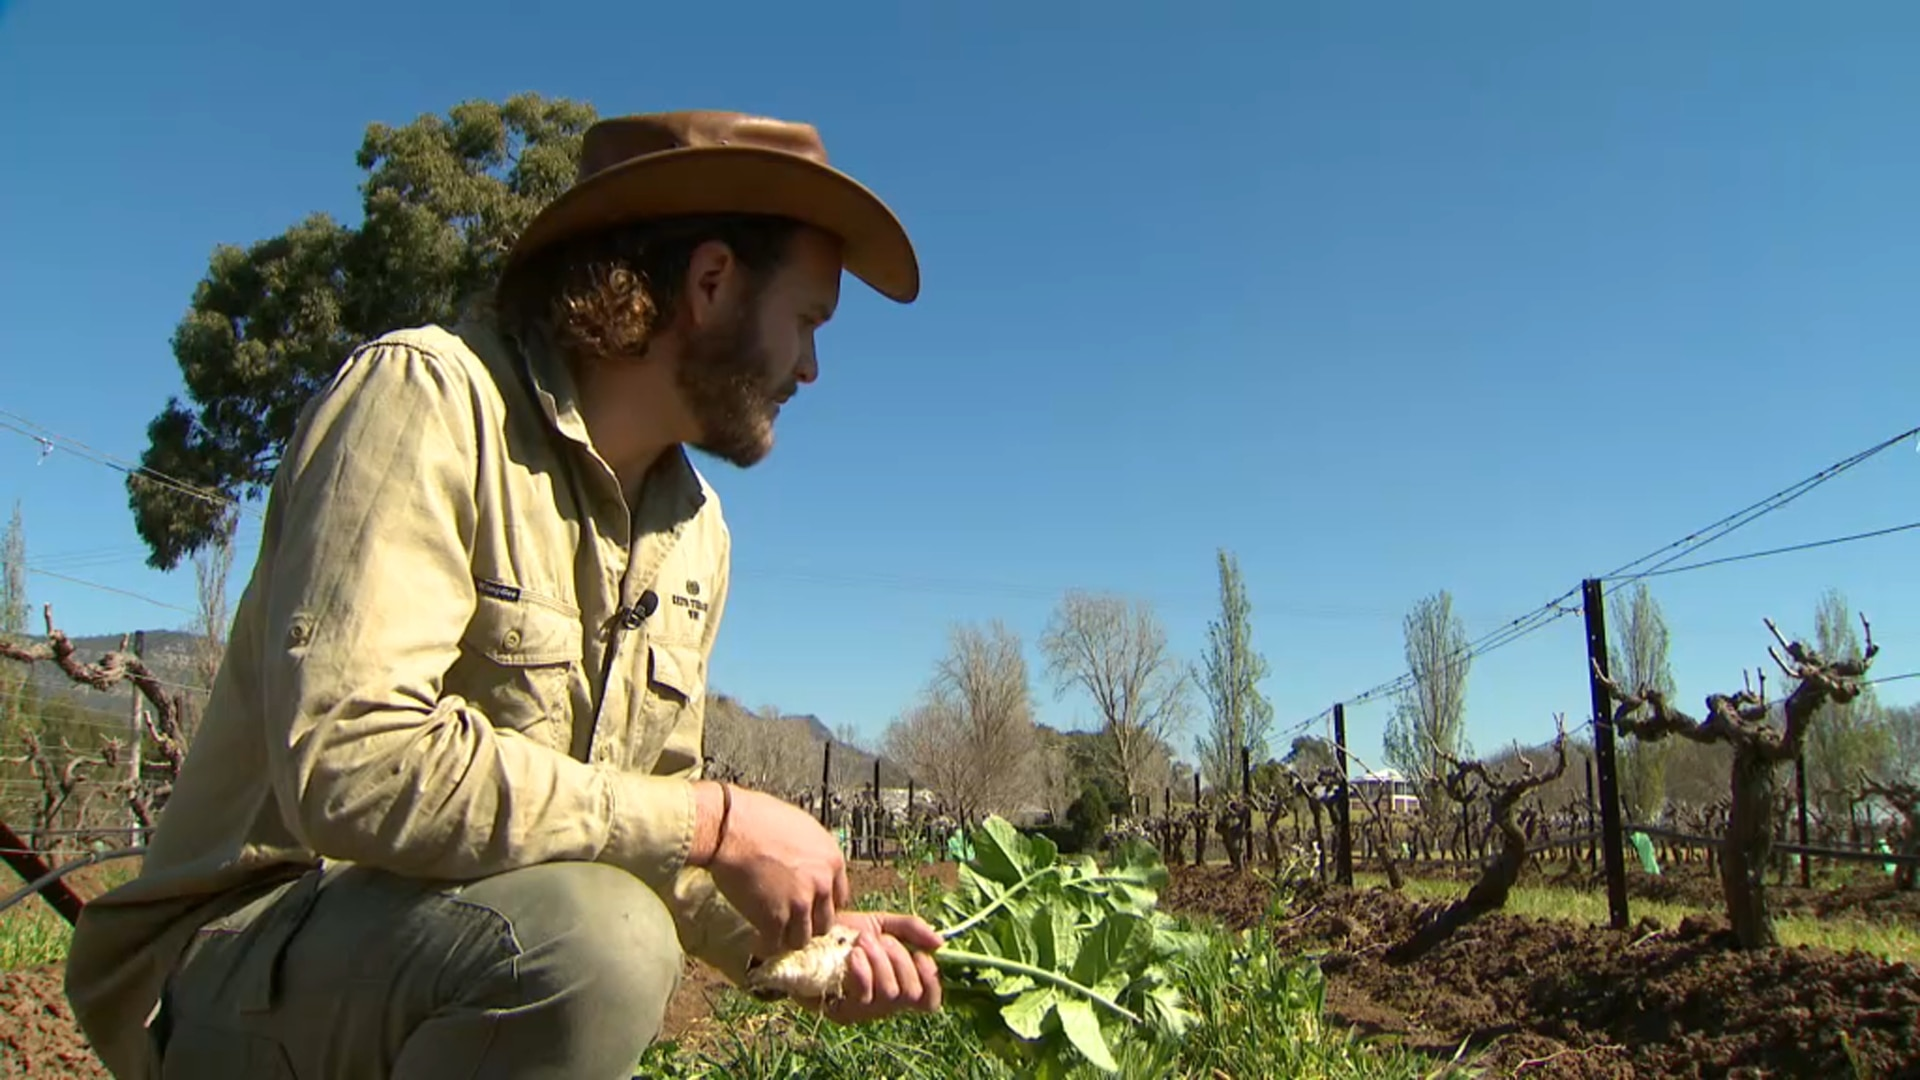 Alisdair Tulloch is using regenerative agriculture, both to which both address the climate crisis and alleviate the impact of the drought.